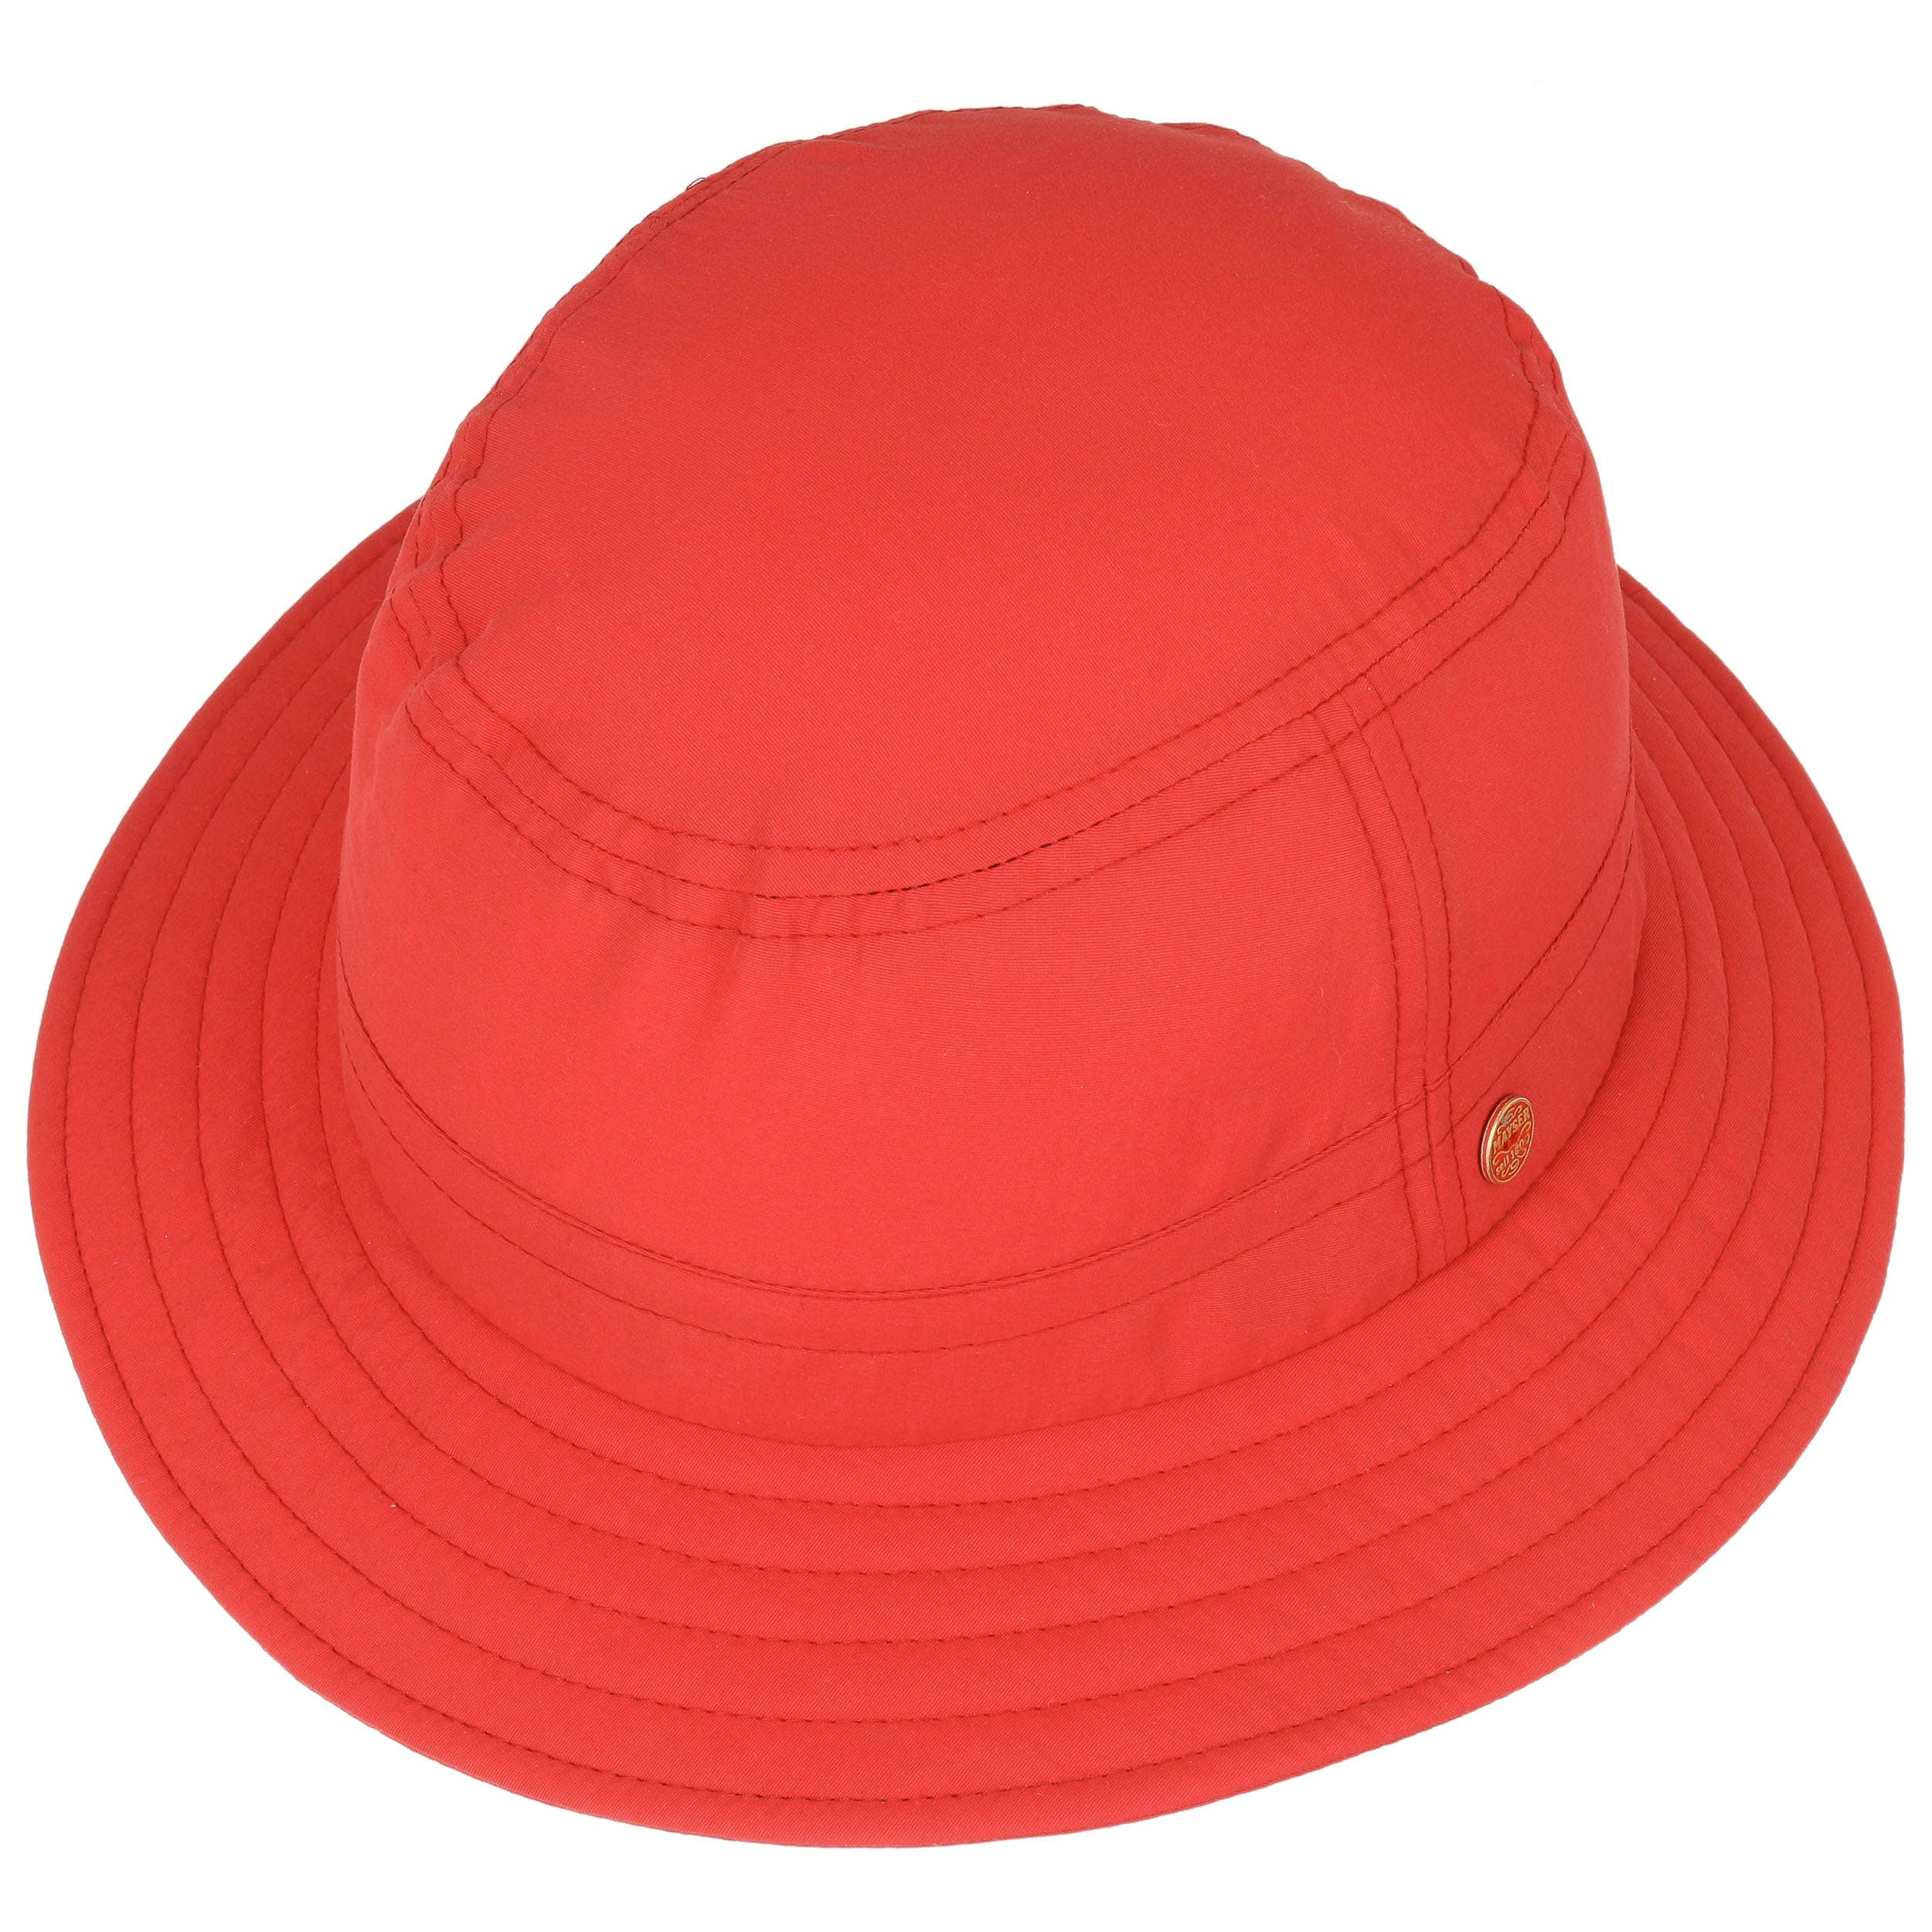 60356ed4950d ... UV Protection Sun Hat by Mayser - red 1 ...